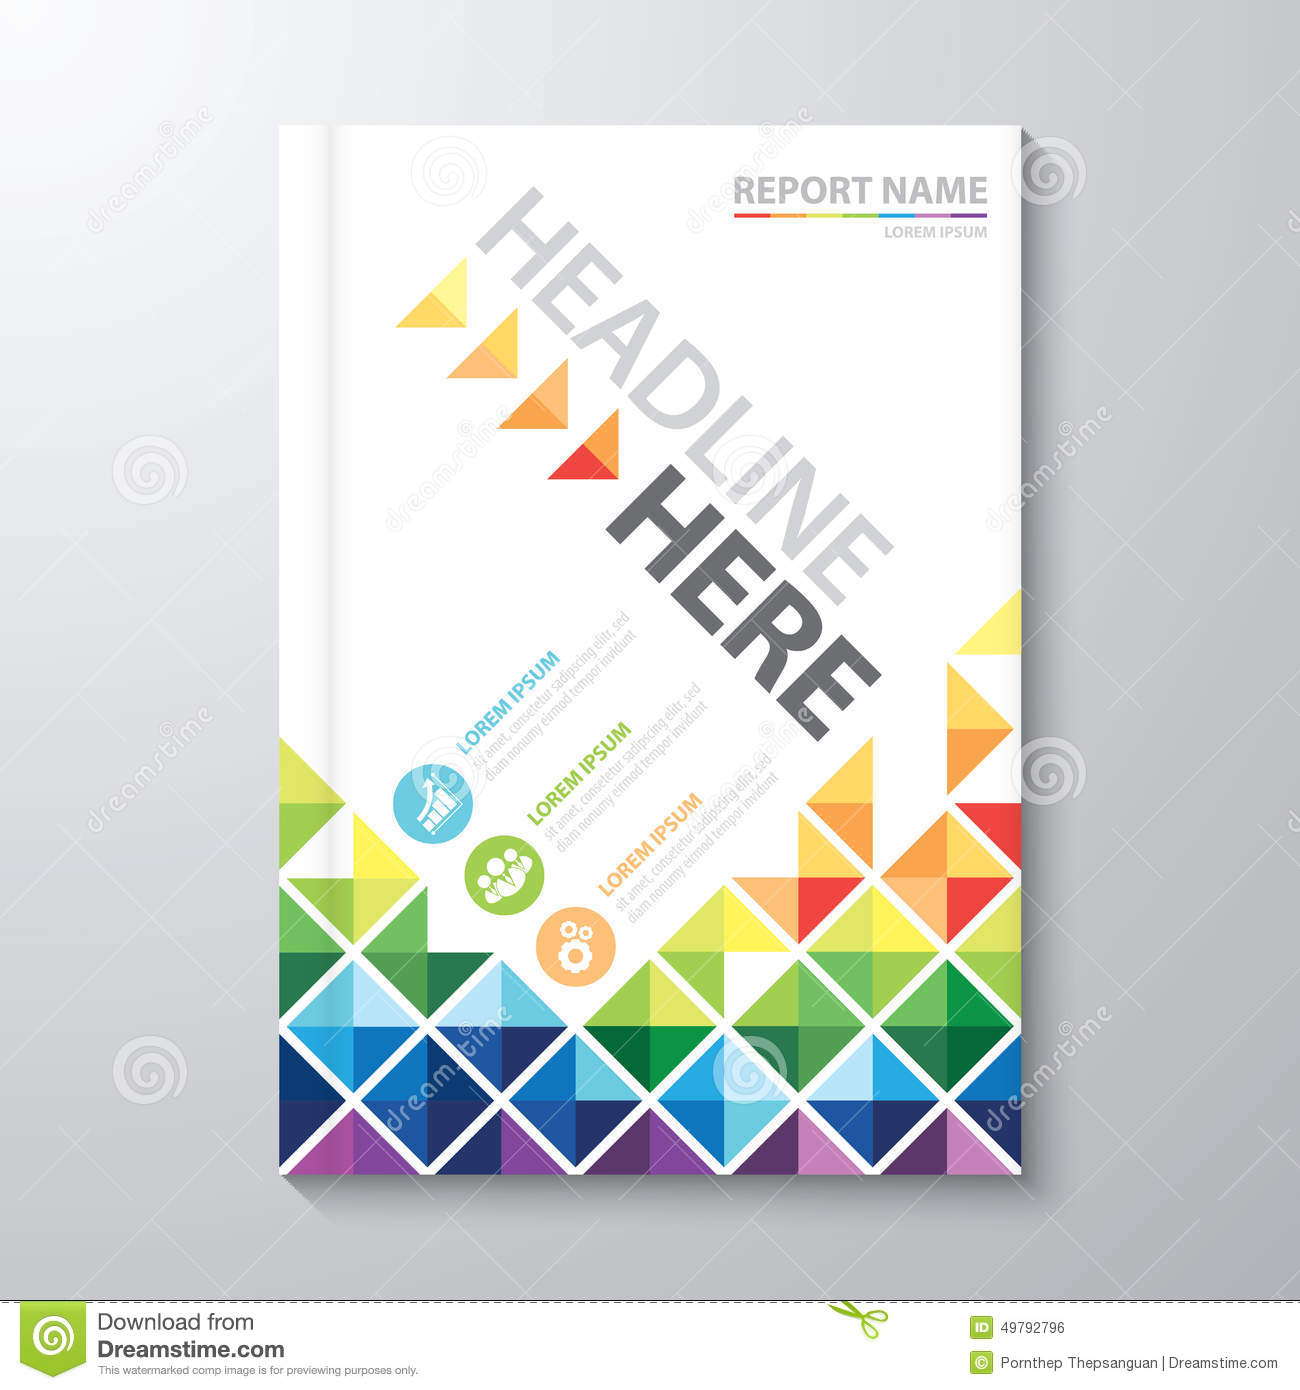 Report cover design templates zrom maxwellsz